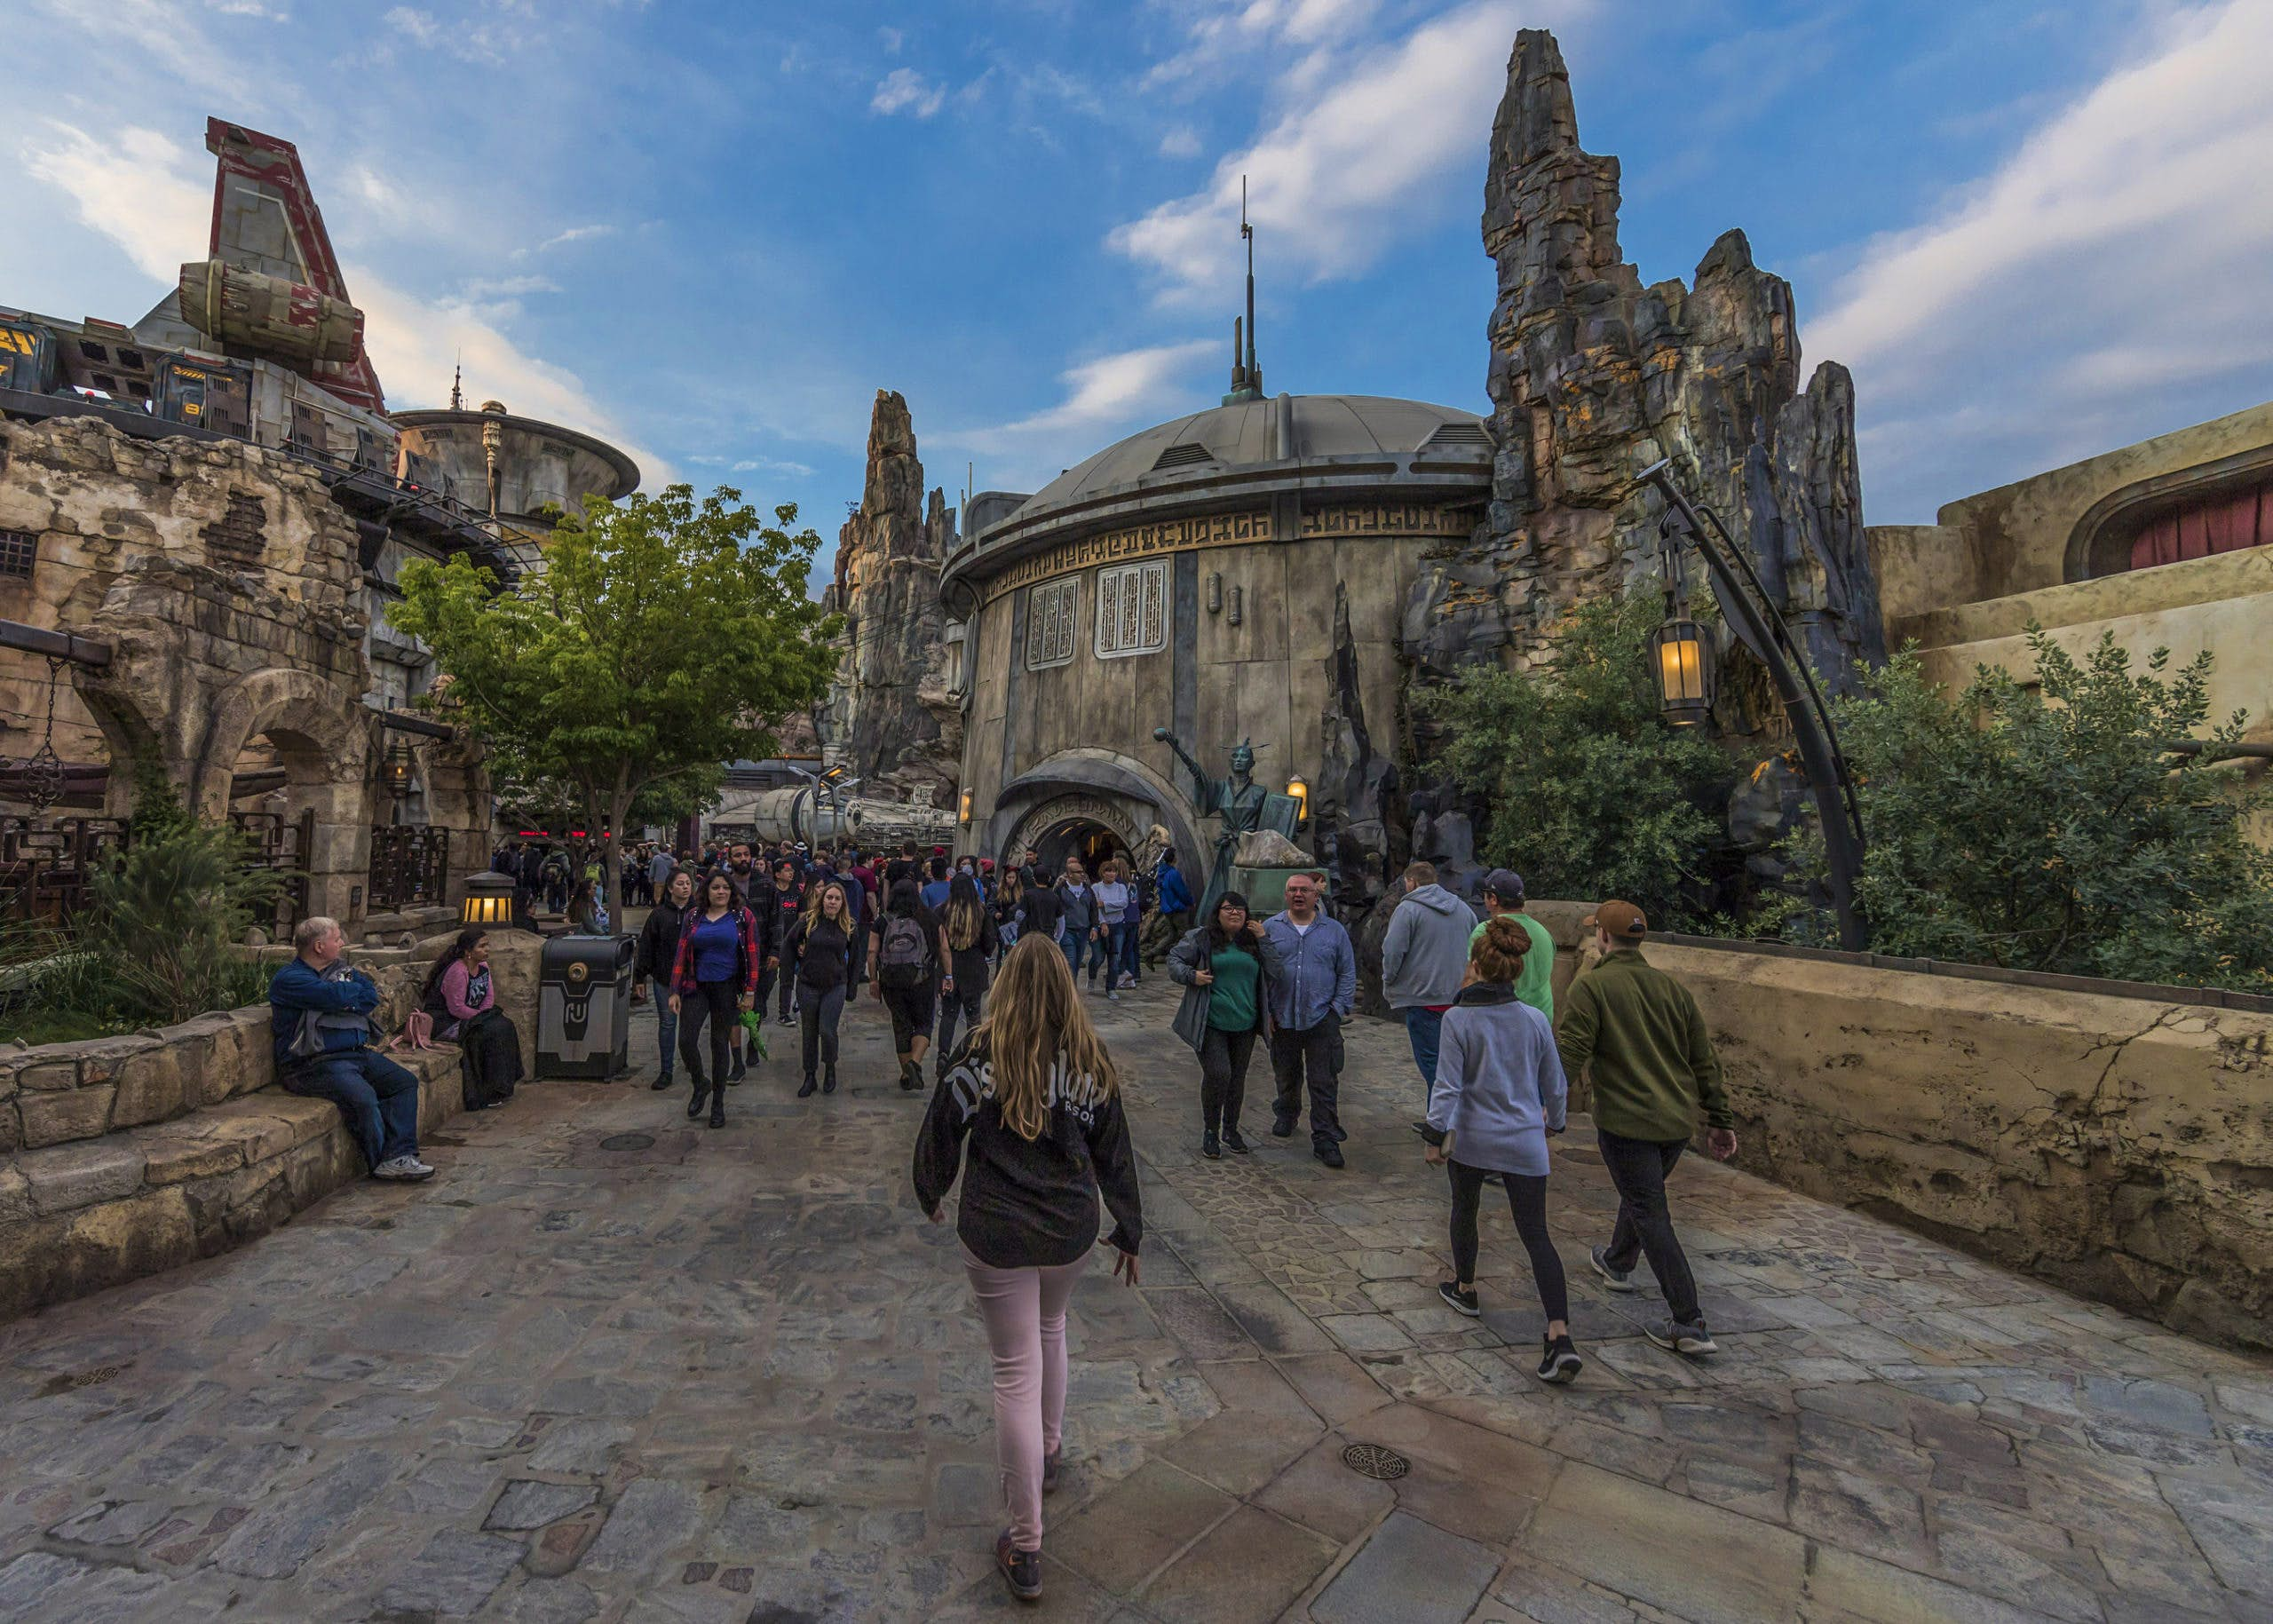 Guests wander through a replica of Black Spire Outpost, a village on the planet of Batuu, at Disneyland